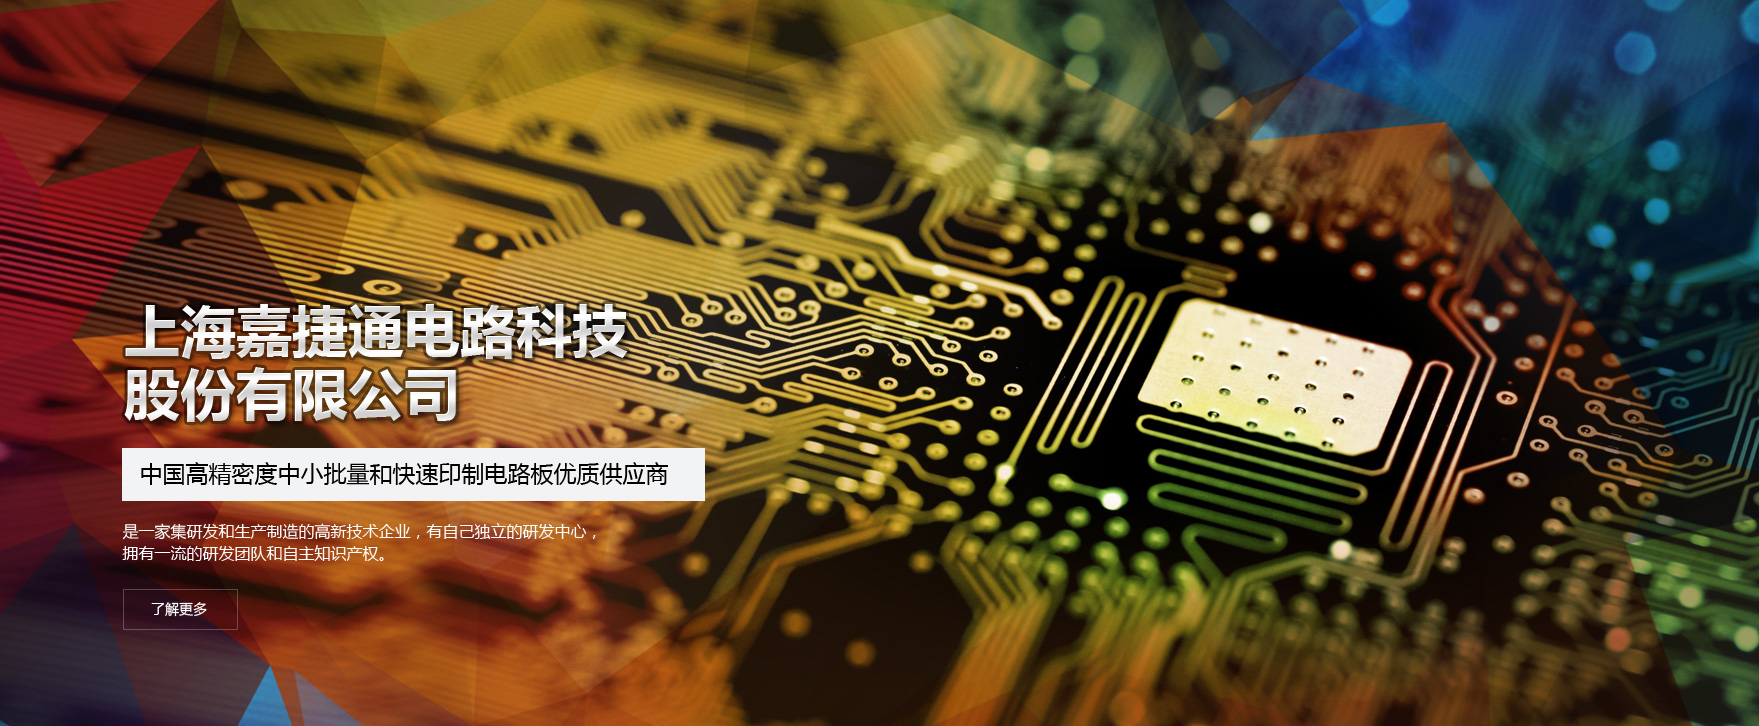 Shanghai Fast Pcb Circuit Technology Corporation Limited Assembly Board Printing Machinepcb Manufacturing